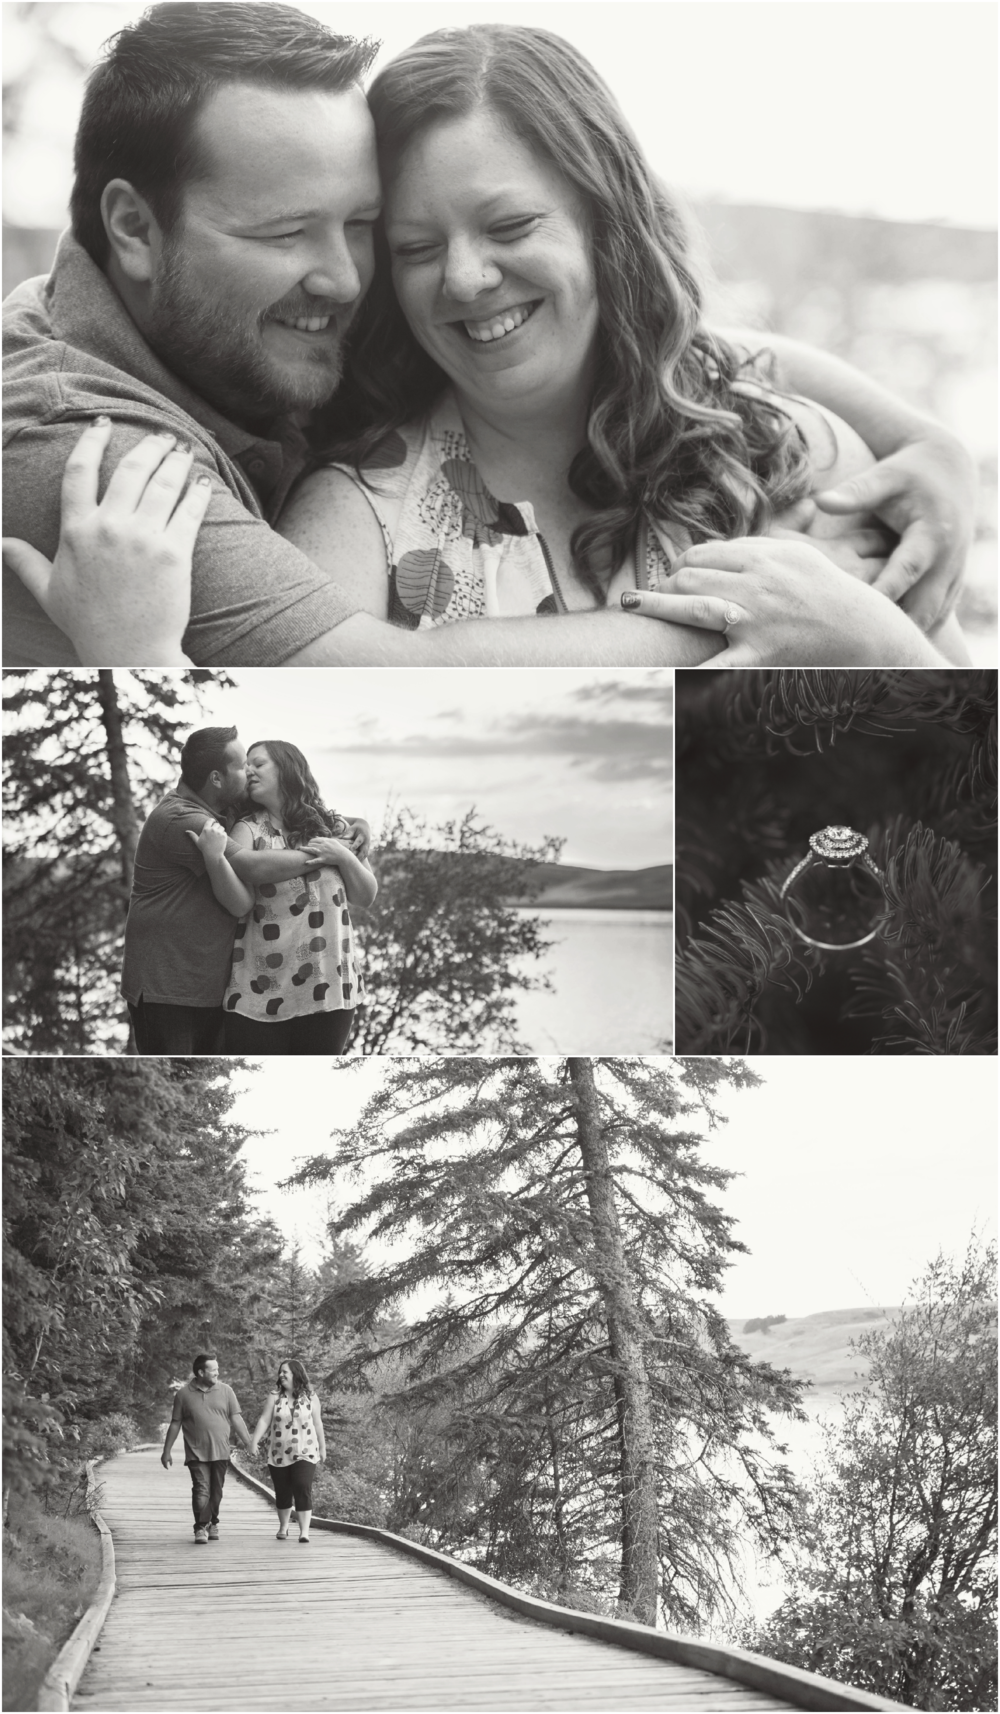 elkwater_engagement_07.png